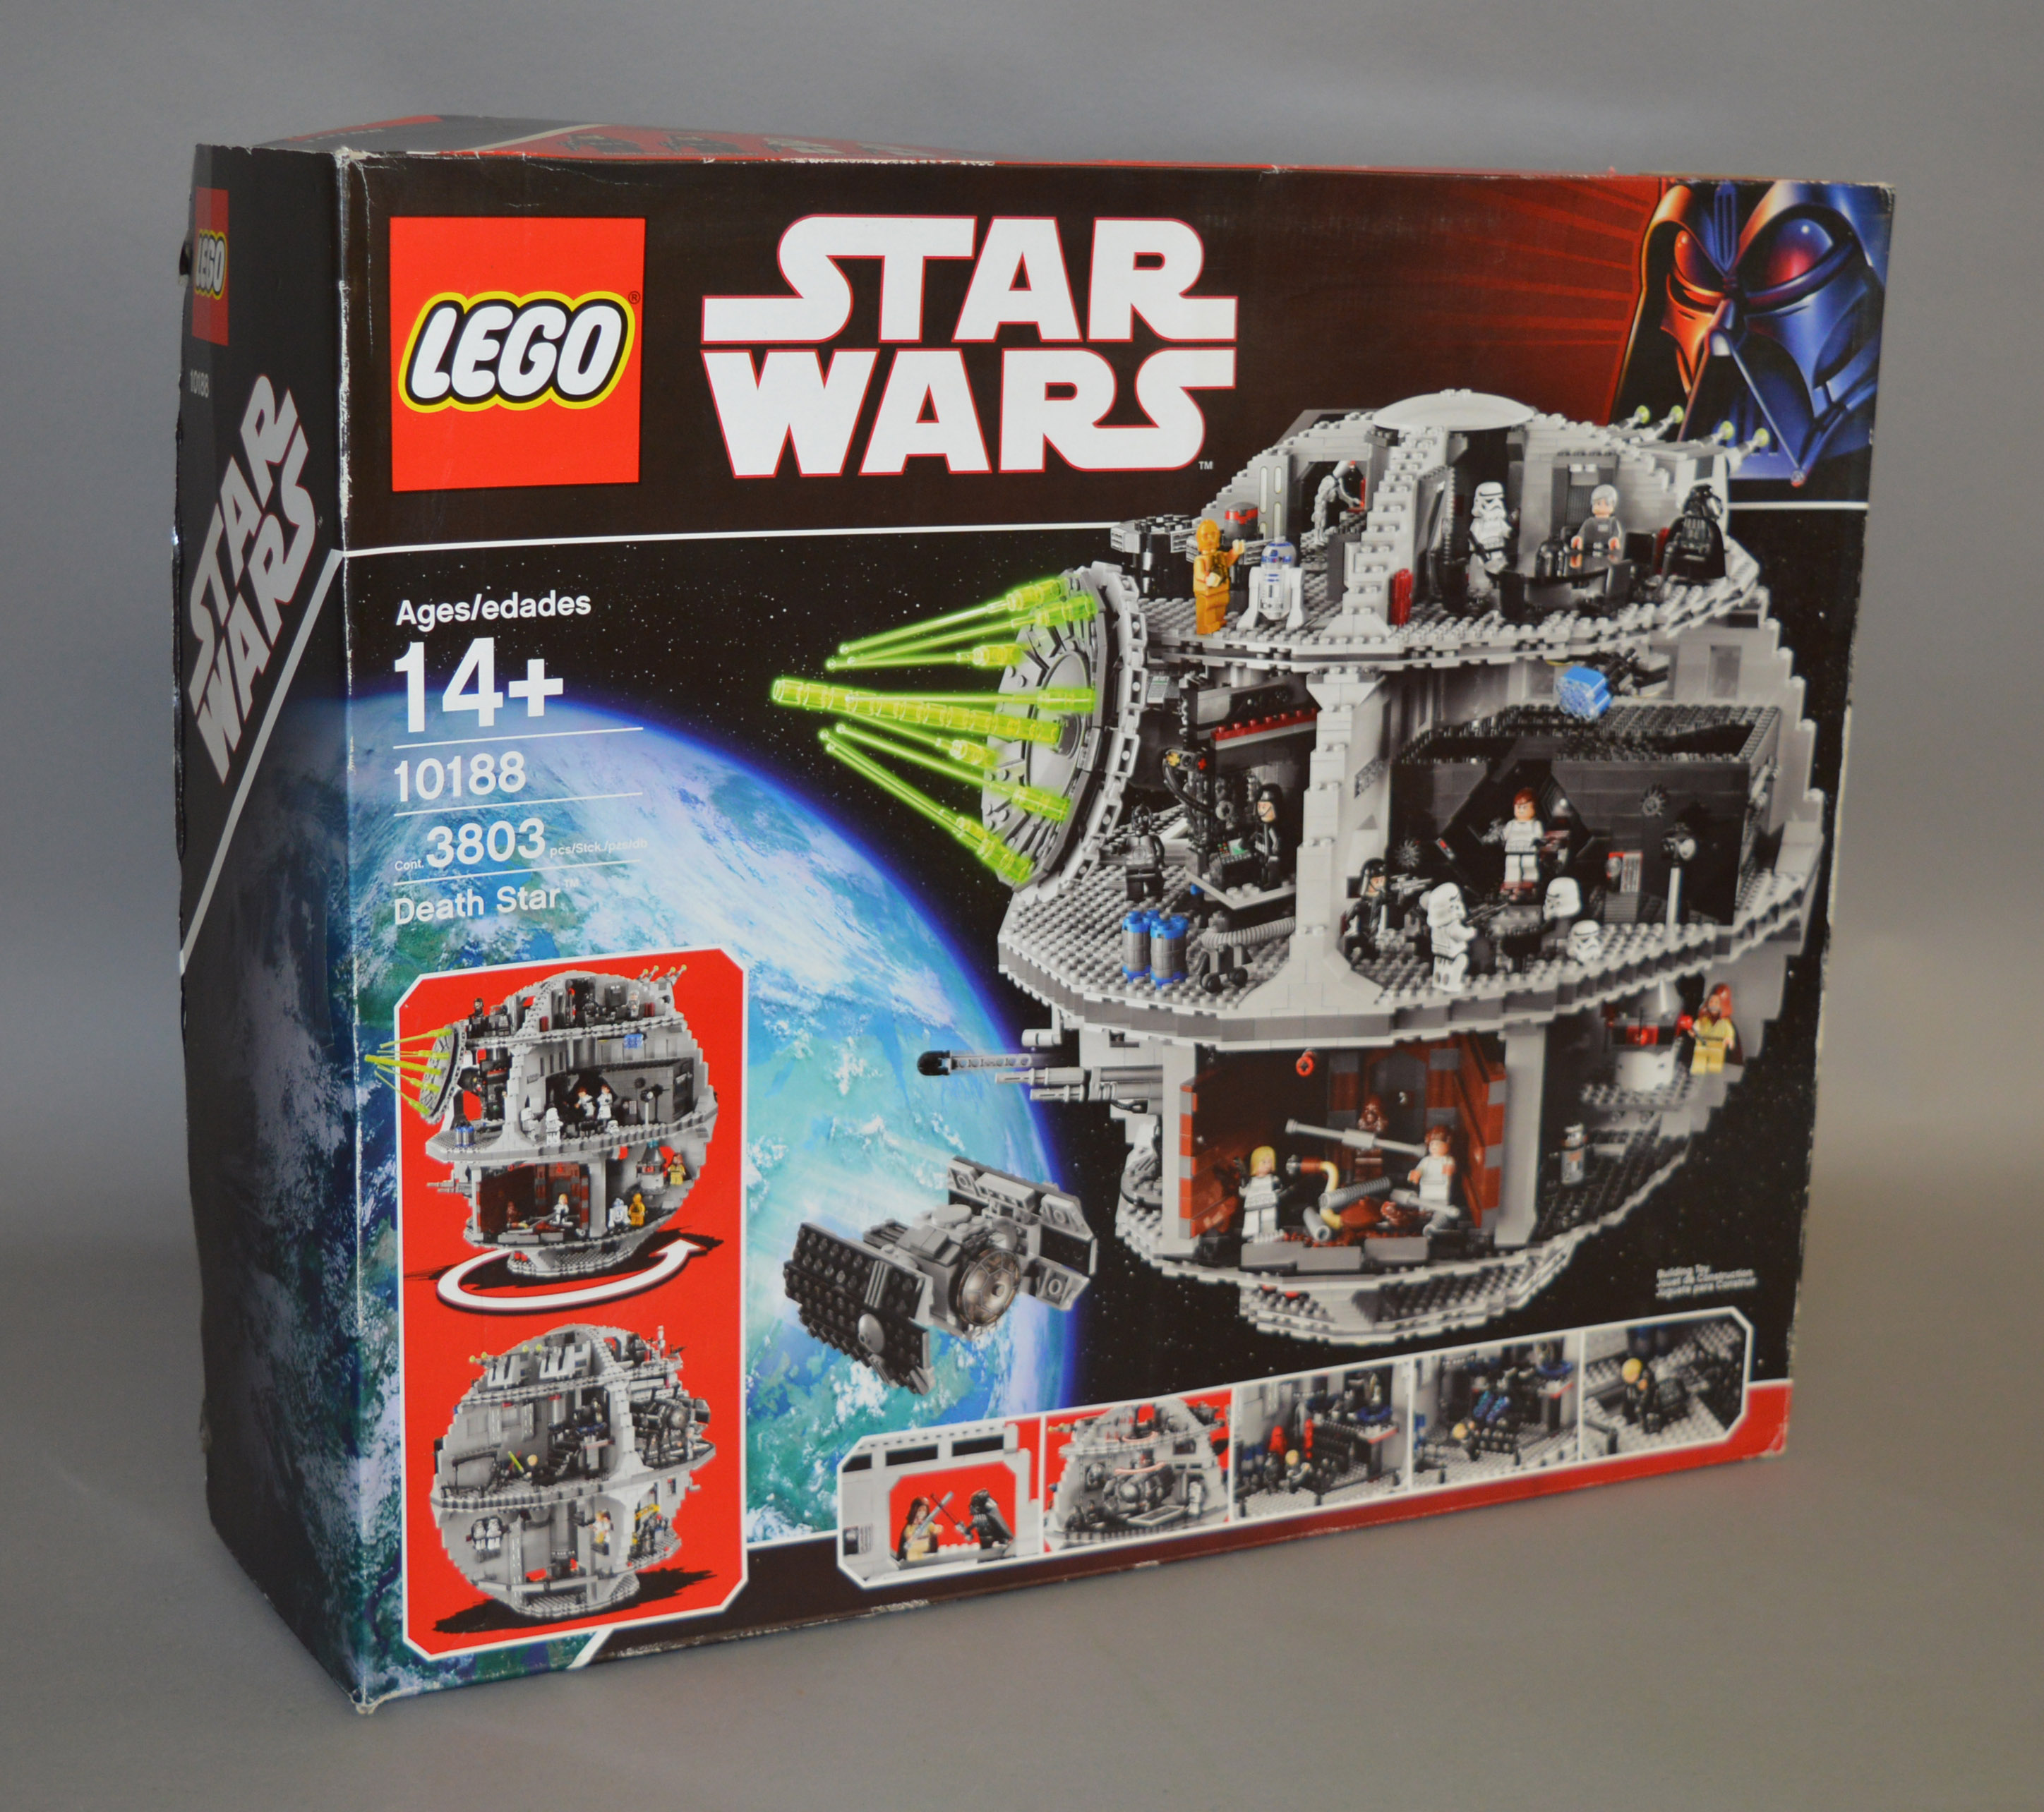 Lot 15 - Lego Star Wars 10188 'Death Star', in generally G box with some scuffing and creasing.